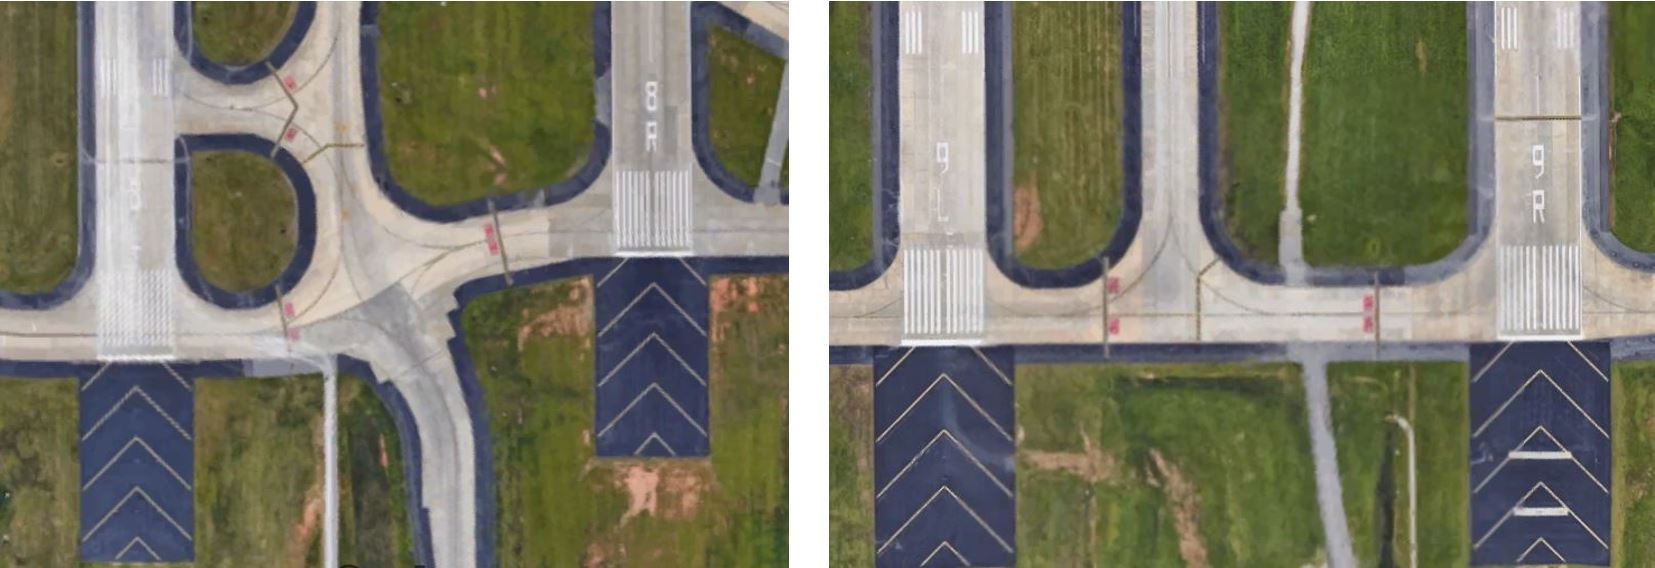 Figure 5 : Four Parallel Runways at Hartsfield-Jackson, ATL